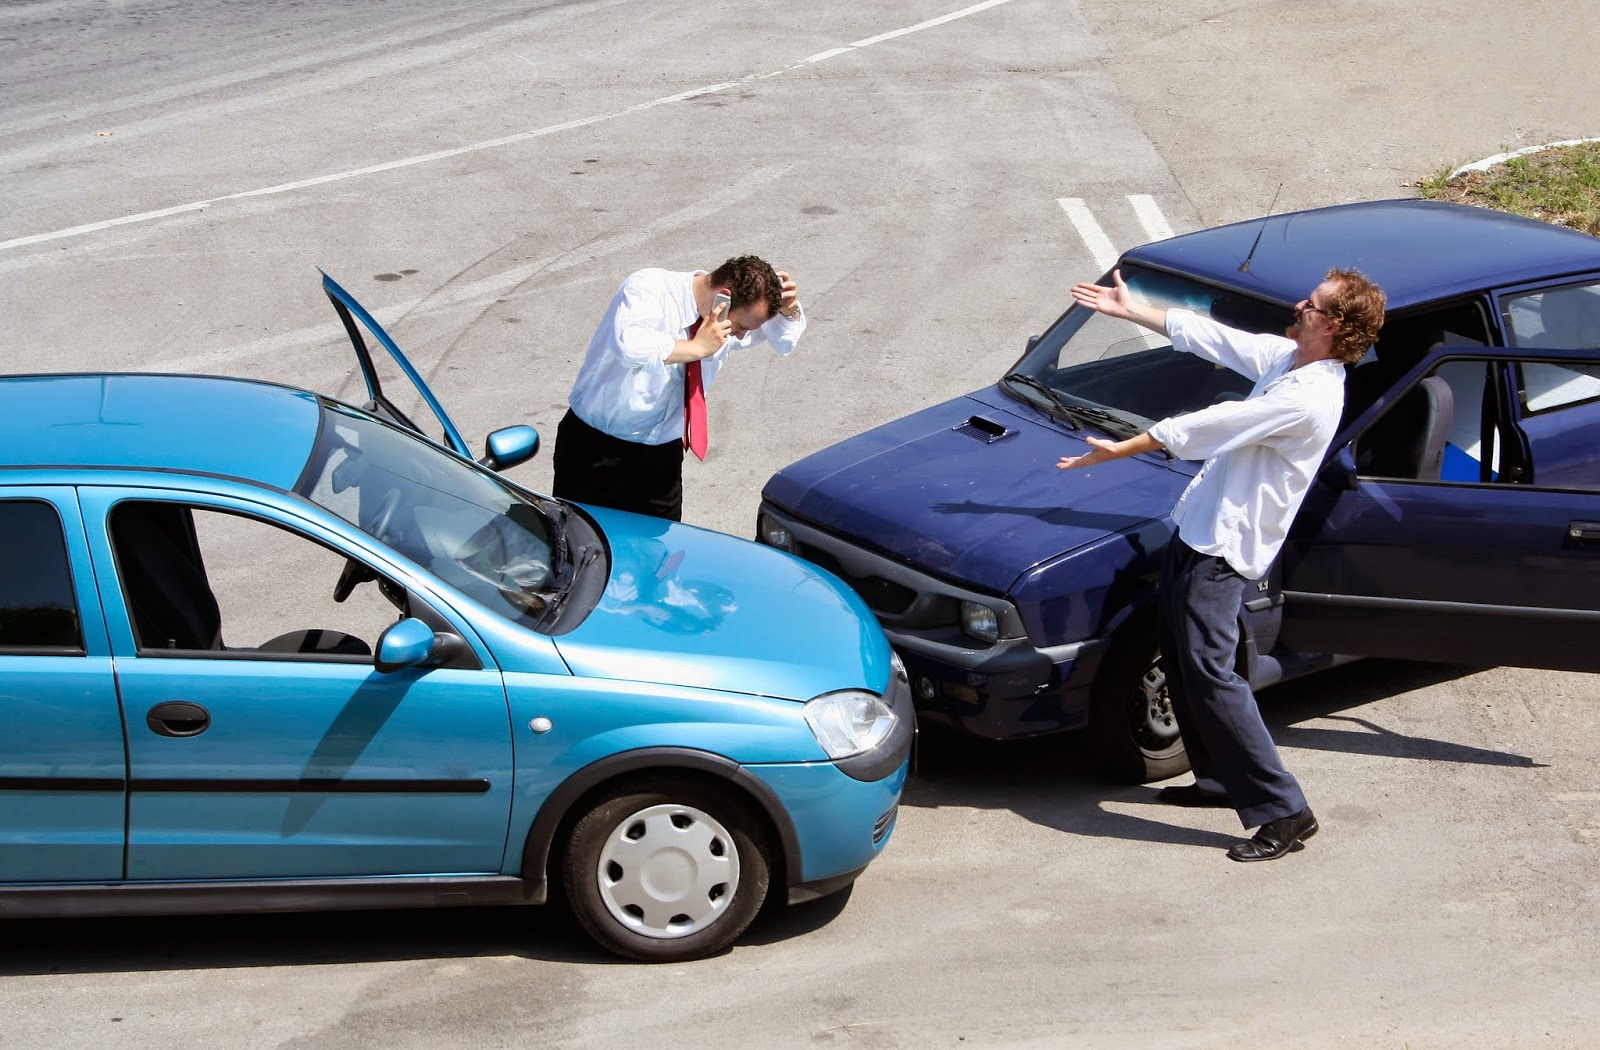 The Procedure of Filing a Car Insurance Claim